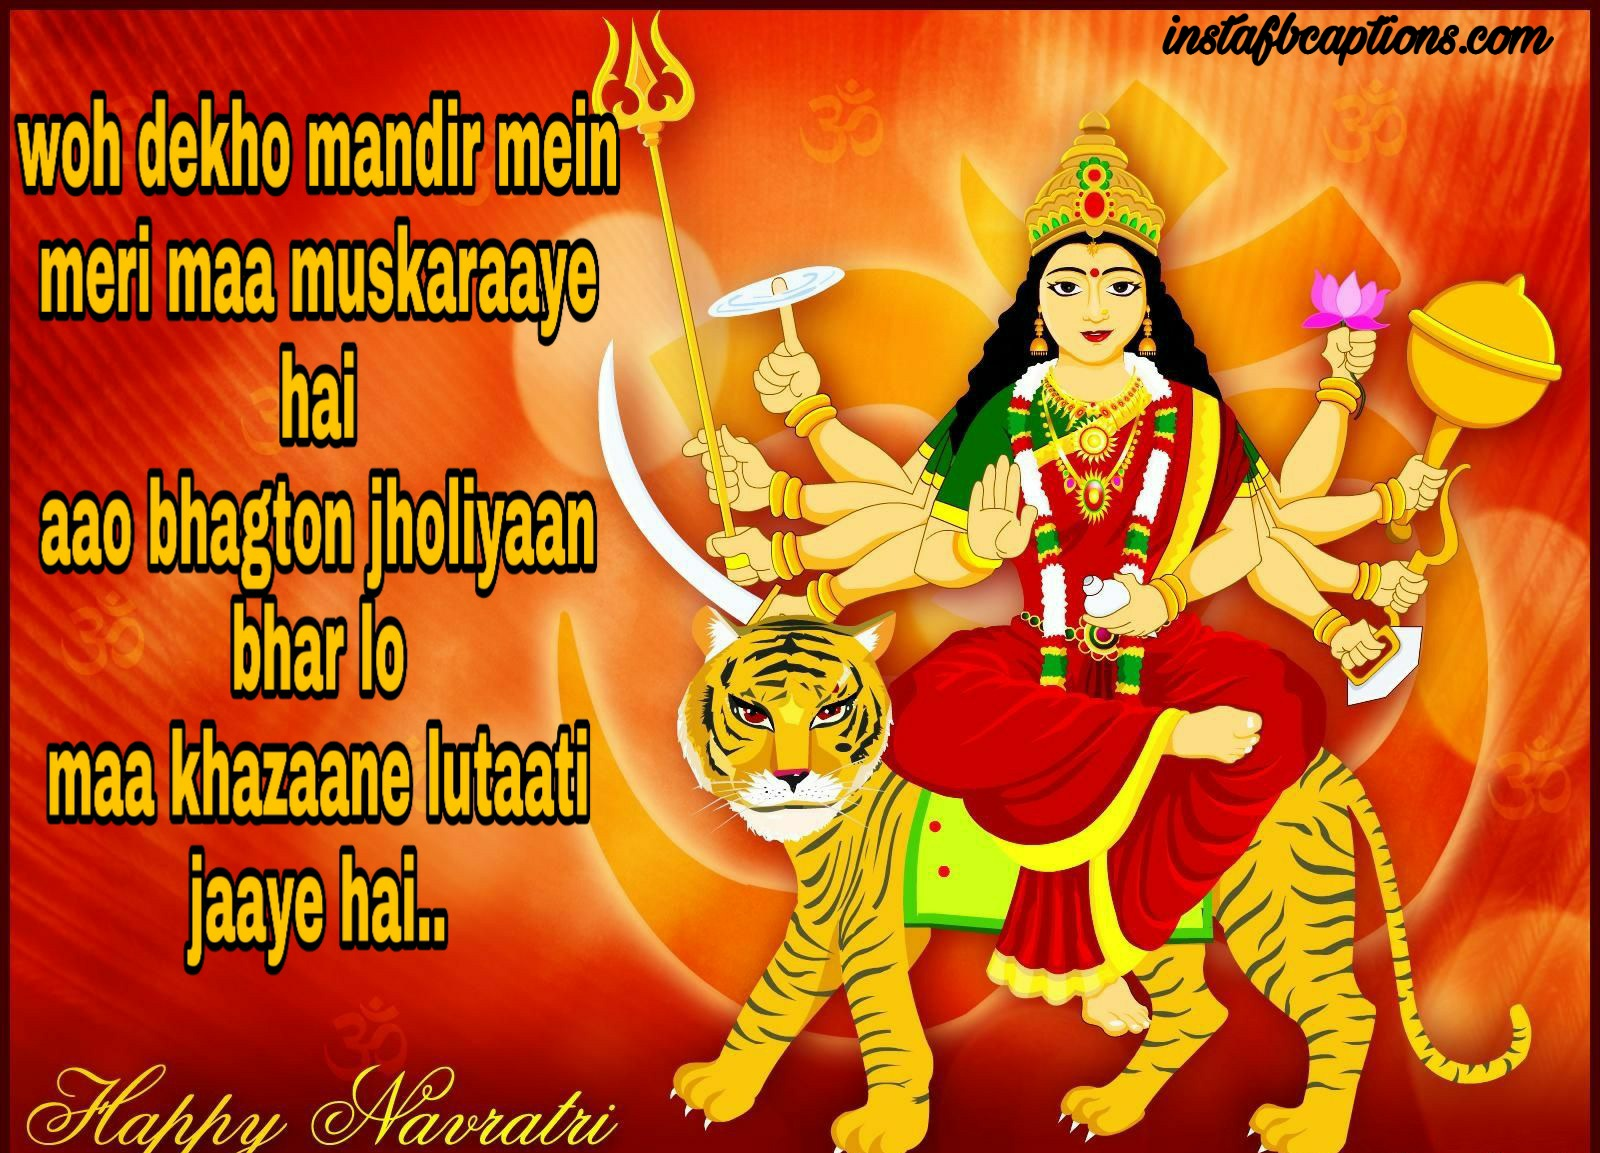 Hindi Navratri Poems  - Hindi Navratri Poems - 120+ NAVRATRI Captions for your Navratri Outfit Instagram Post 2021